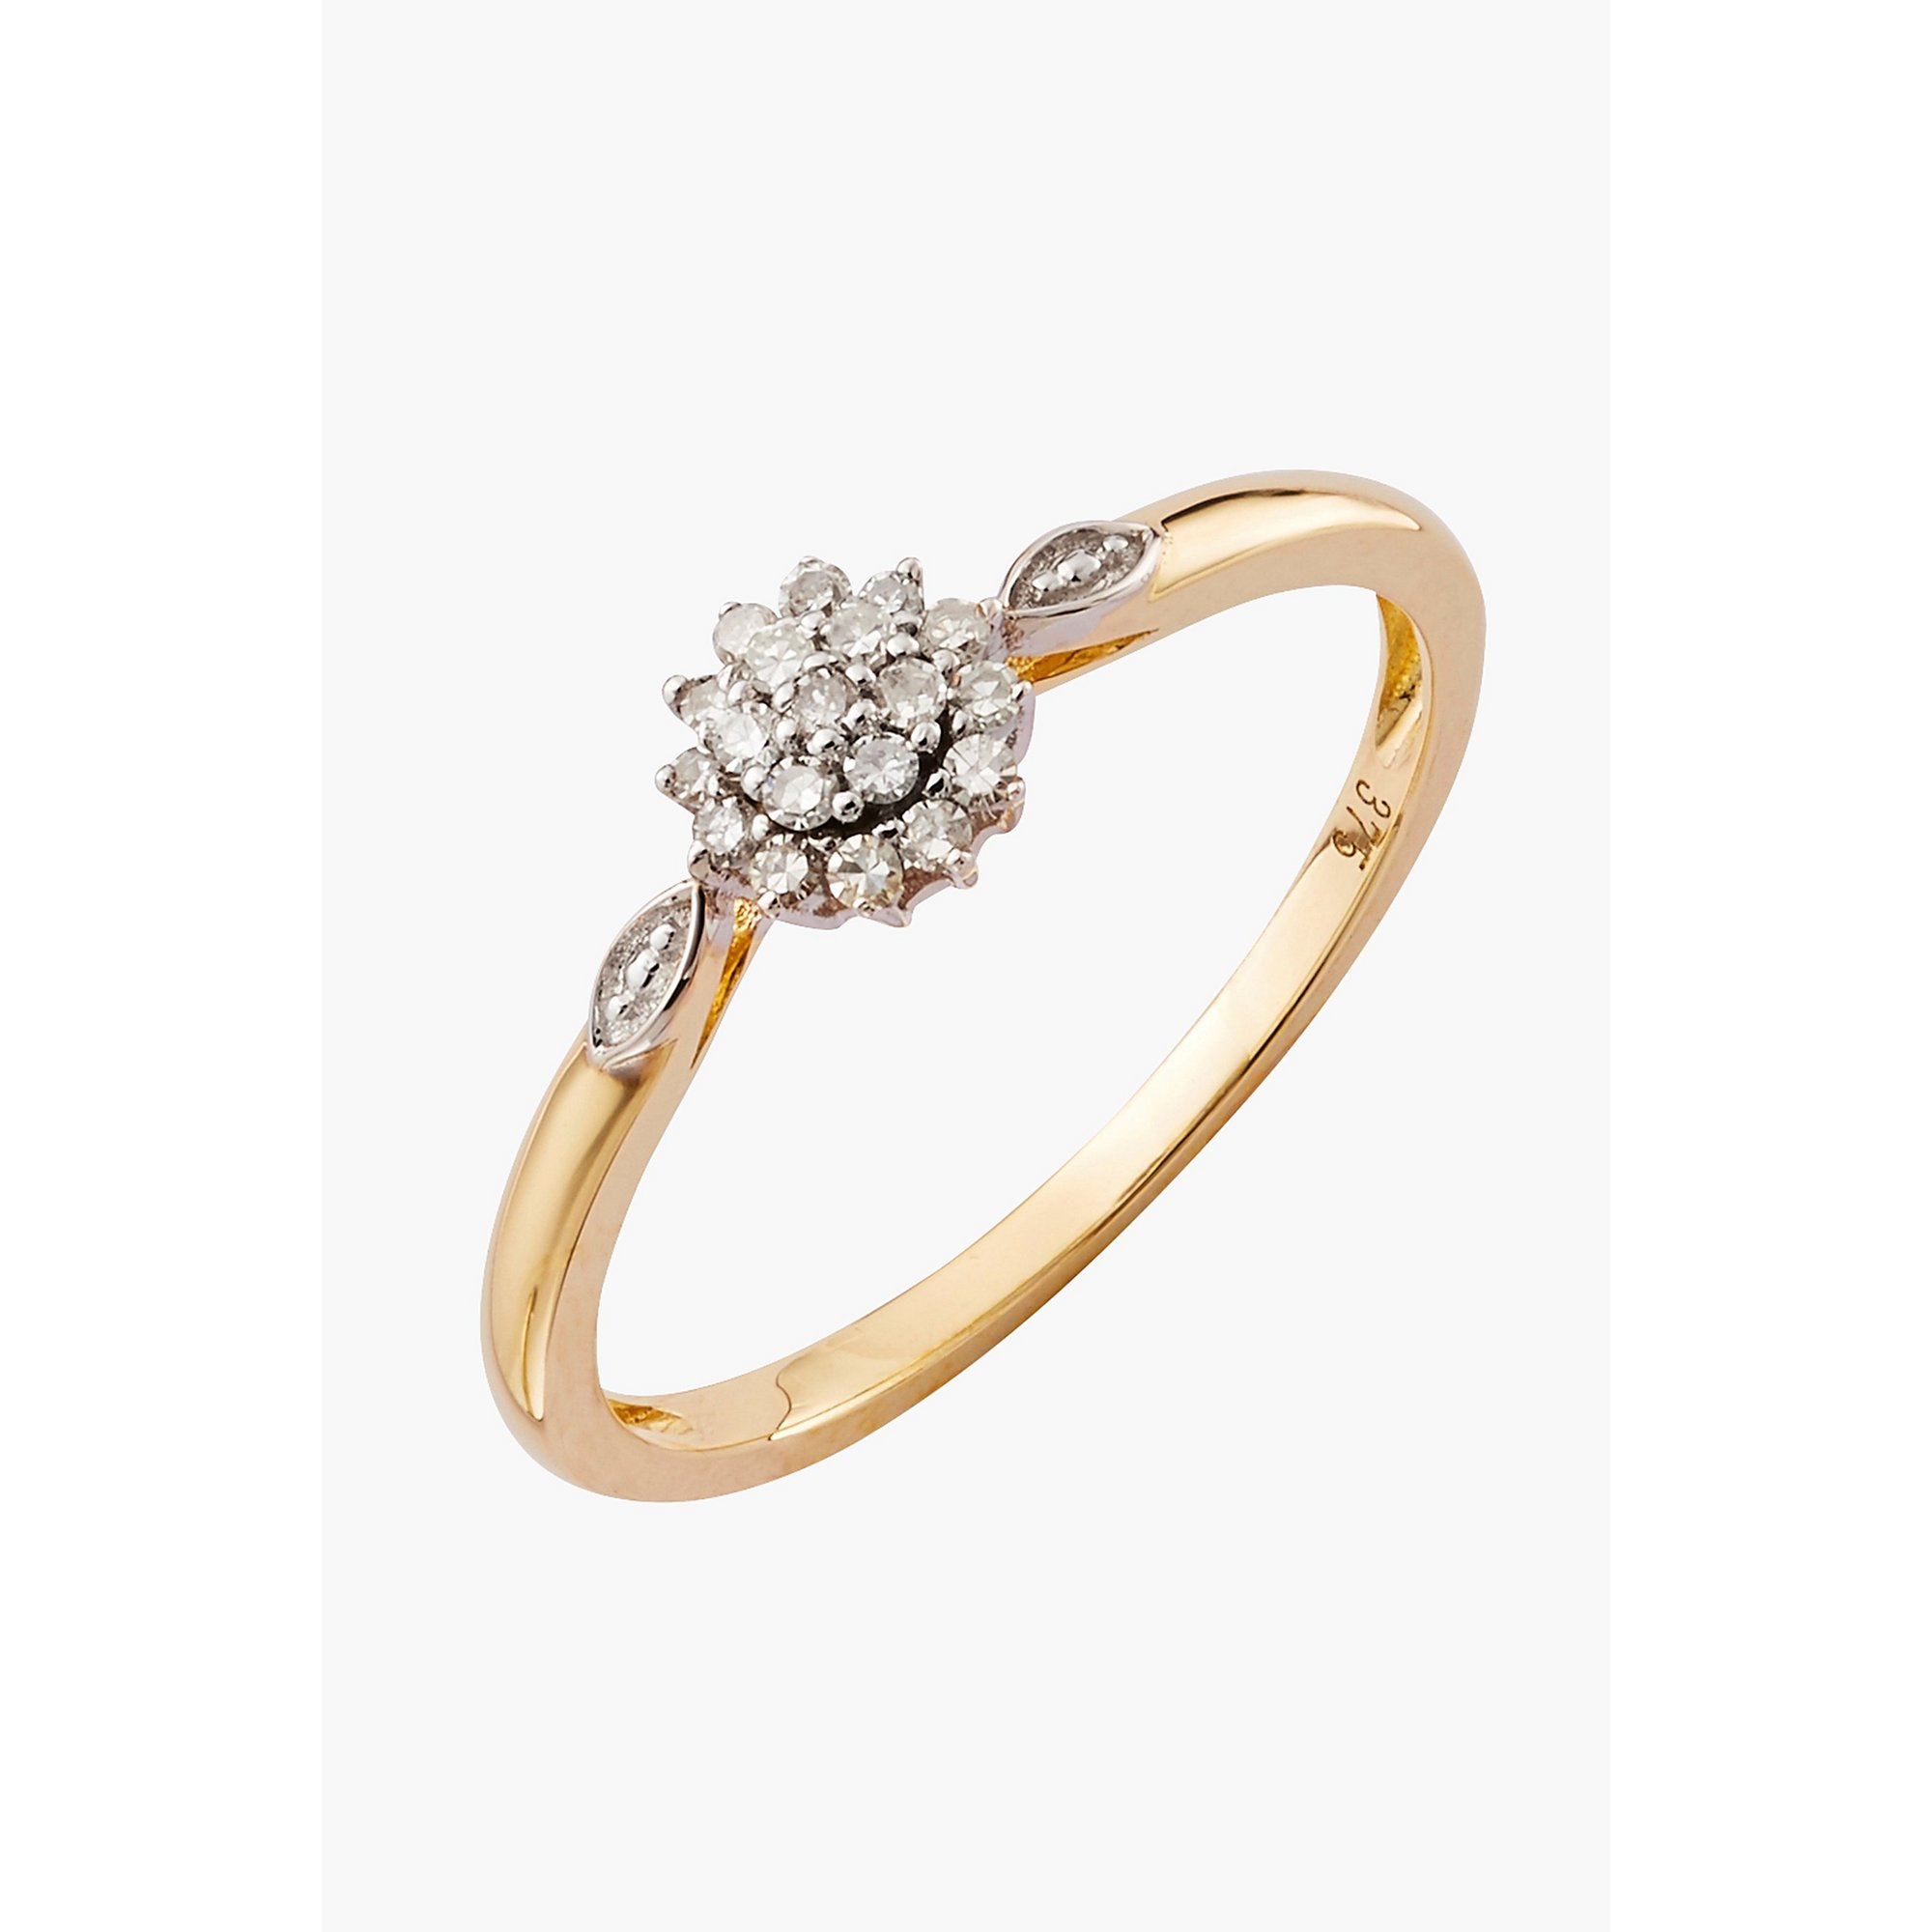 Image of 9ct Gold 0.11ct DiamondCluster Ring